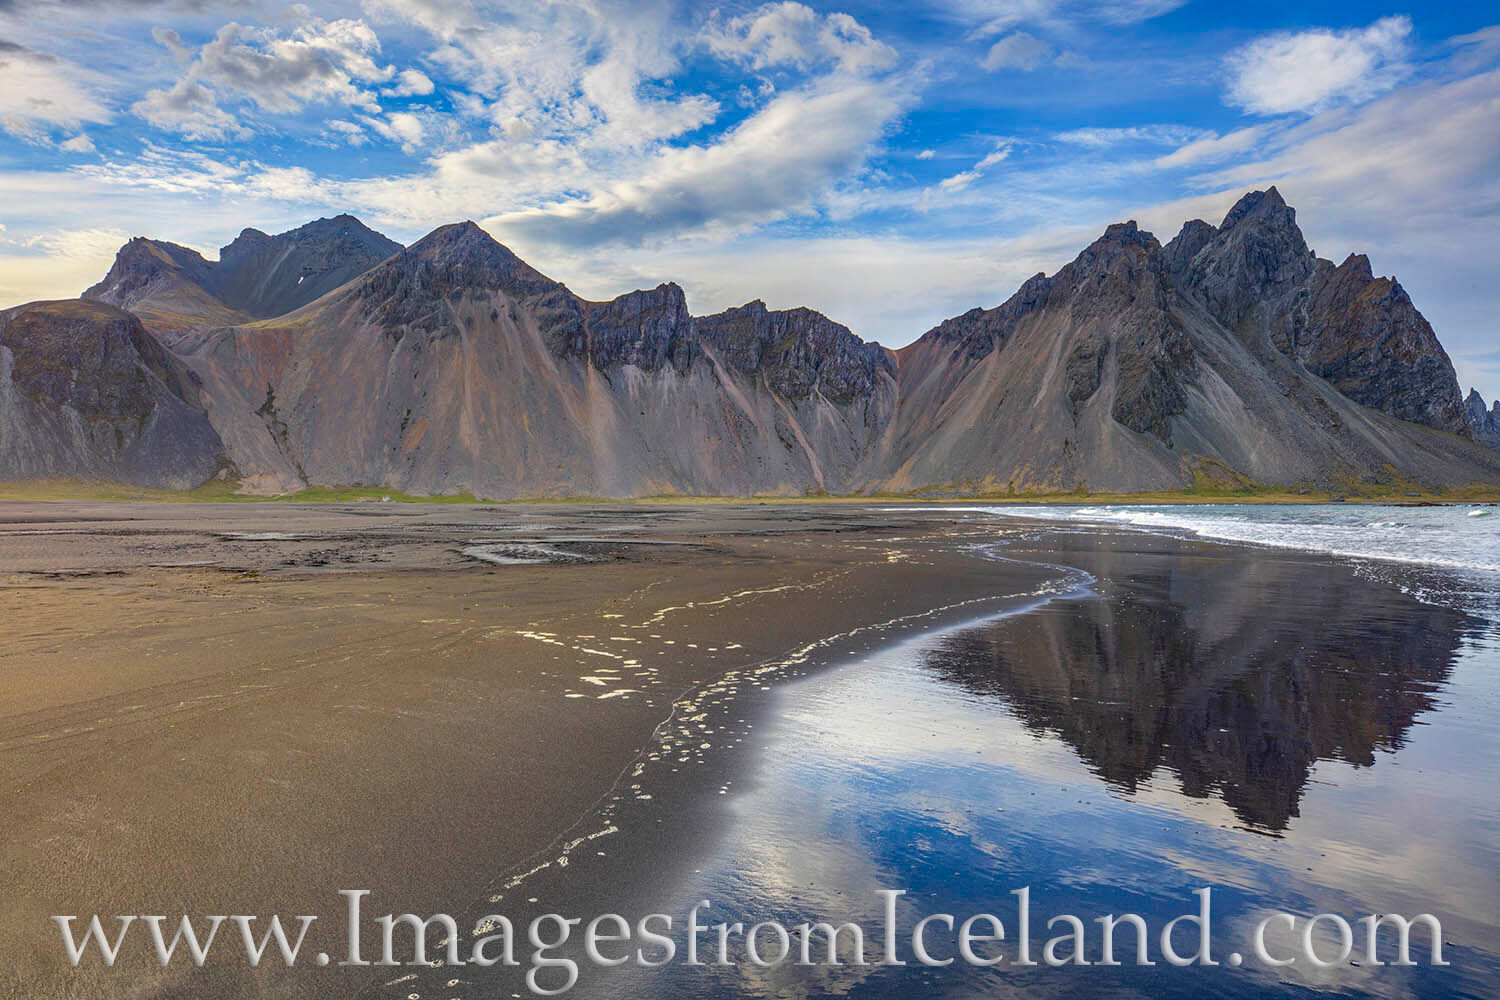 Near the little village of Höfn, the Vestrahorn rises 454 meters above the black sands beach and Atlantic Ocean. Seen here on...